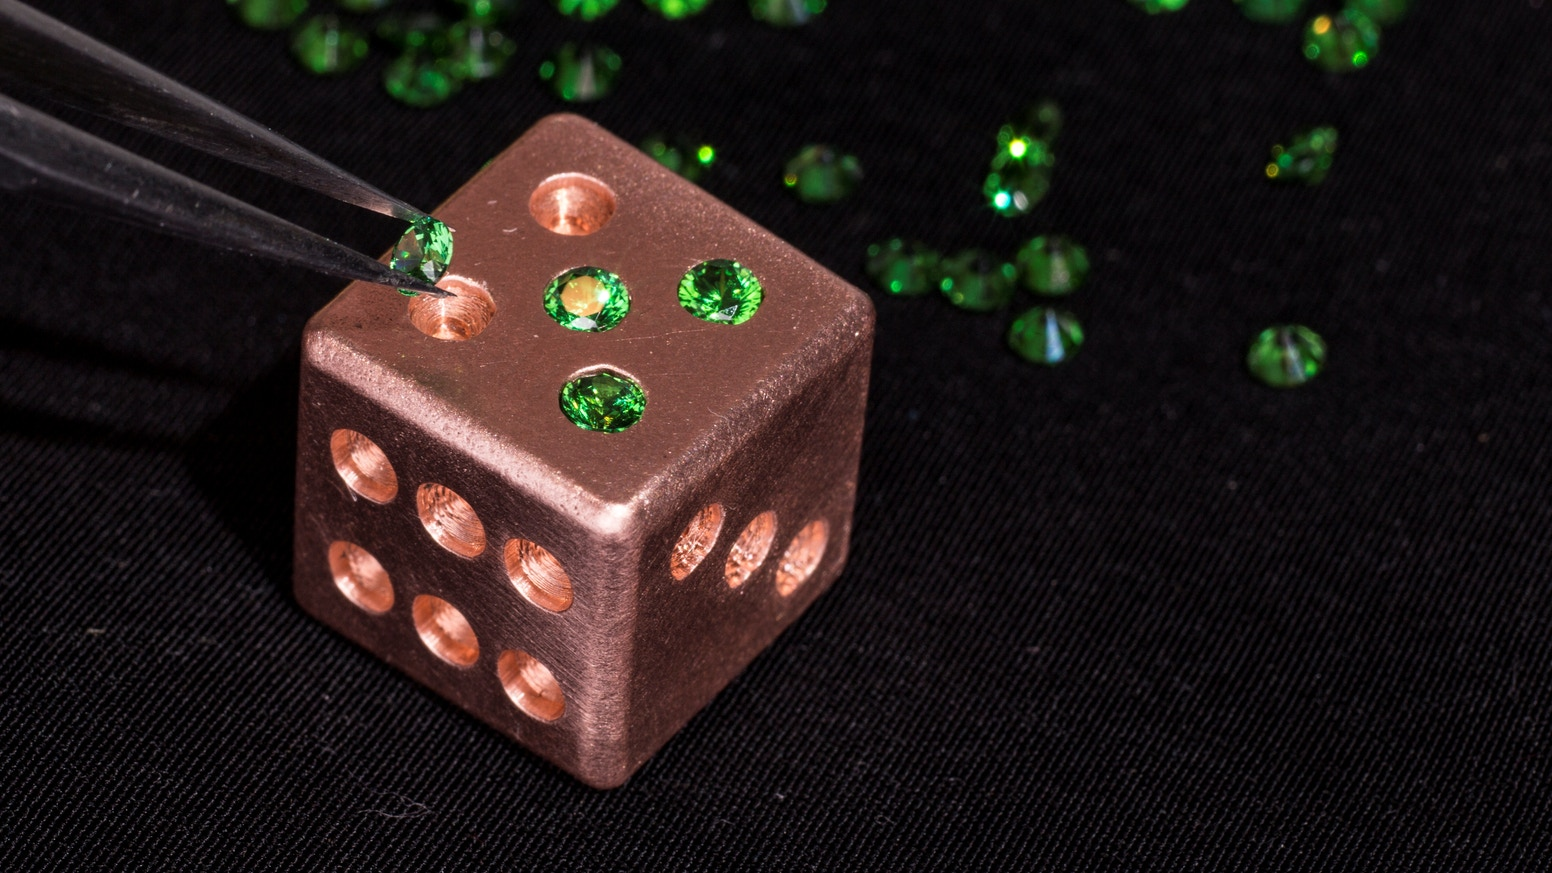 Old World & Modern Machining come together to create these stunning Copper Dice with 21 CZ stones individually hand set. LIKE NO OTHER!